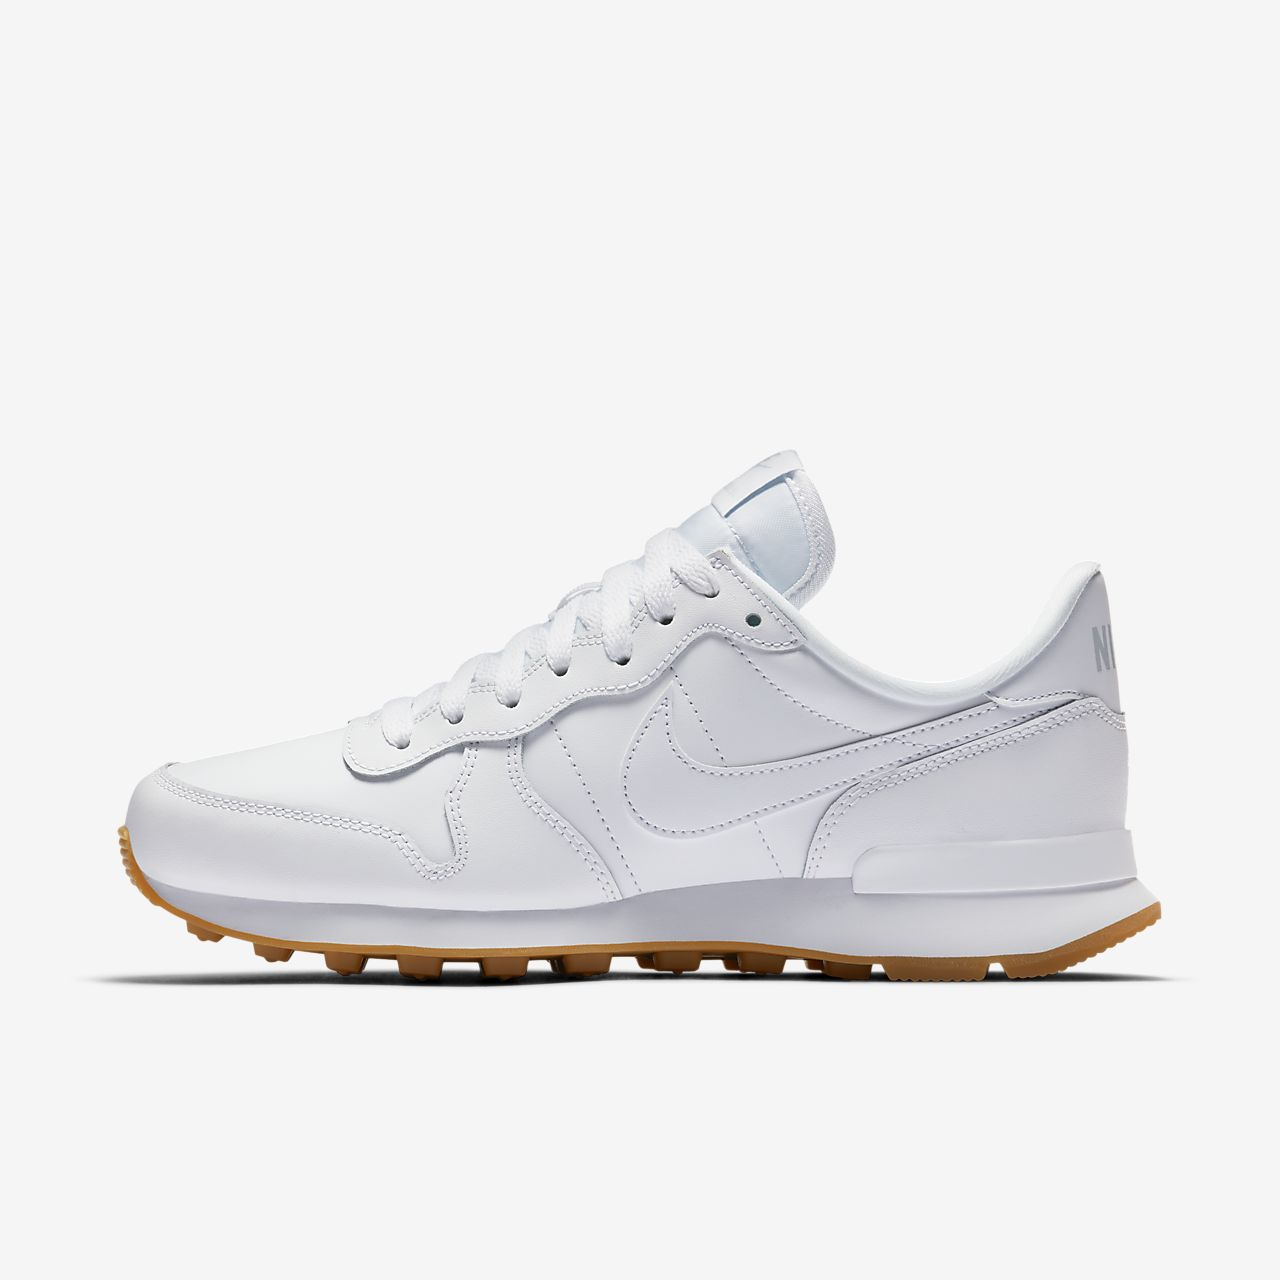 sneakers for cheap 88fc5 0038d Low Resolution Buty damskie Nike Internationalist Buty damskie Nike  Internationalist